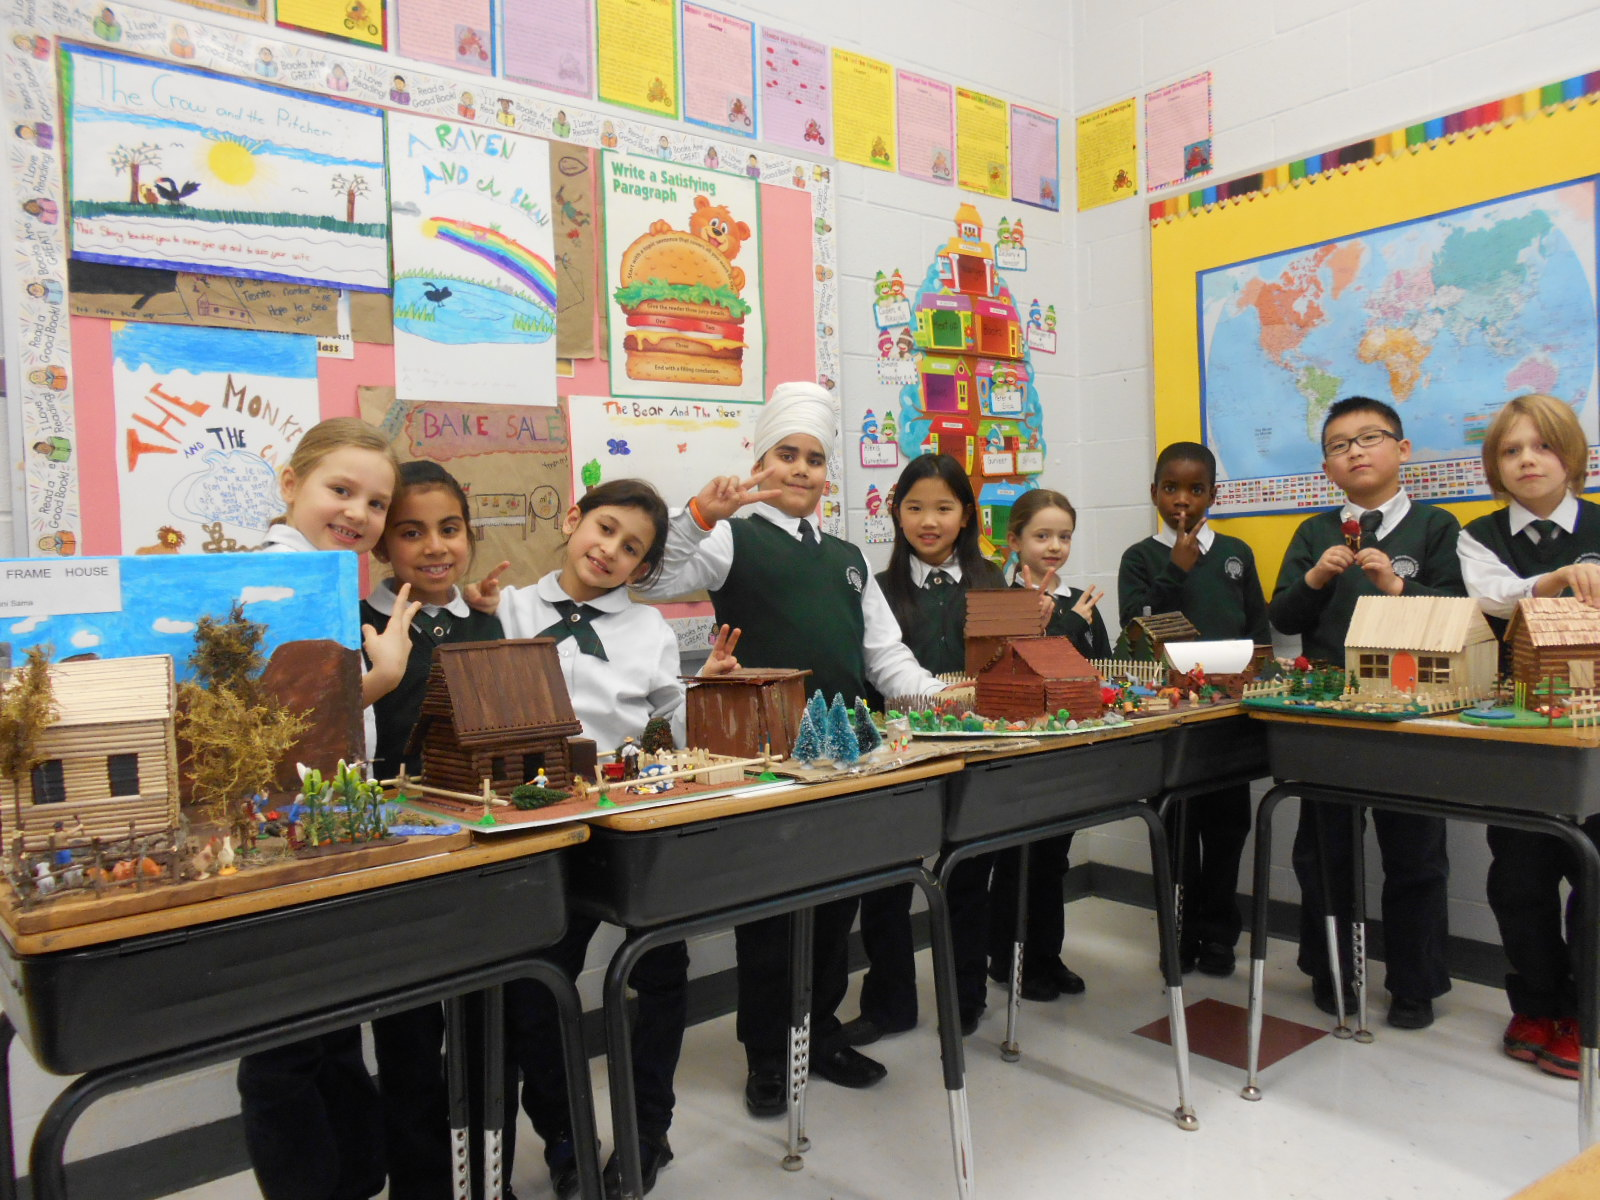 Grade 3A's finished projects displayed all together in class